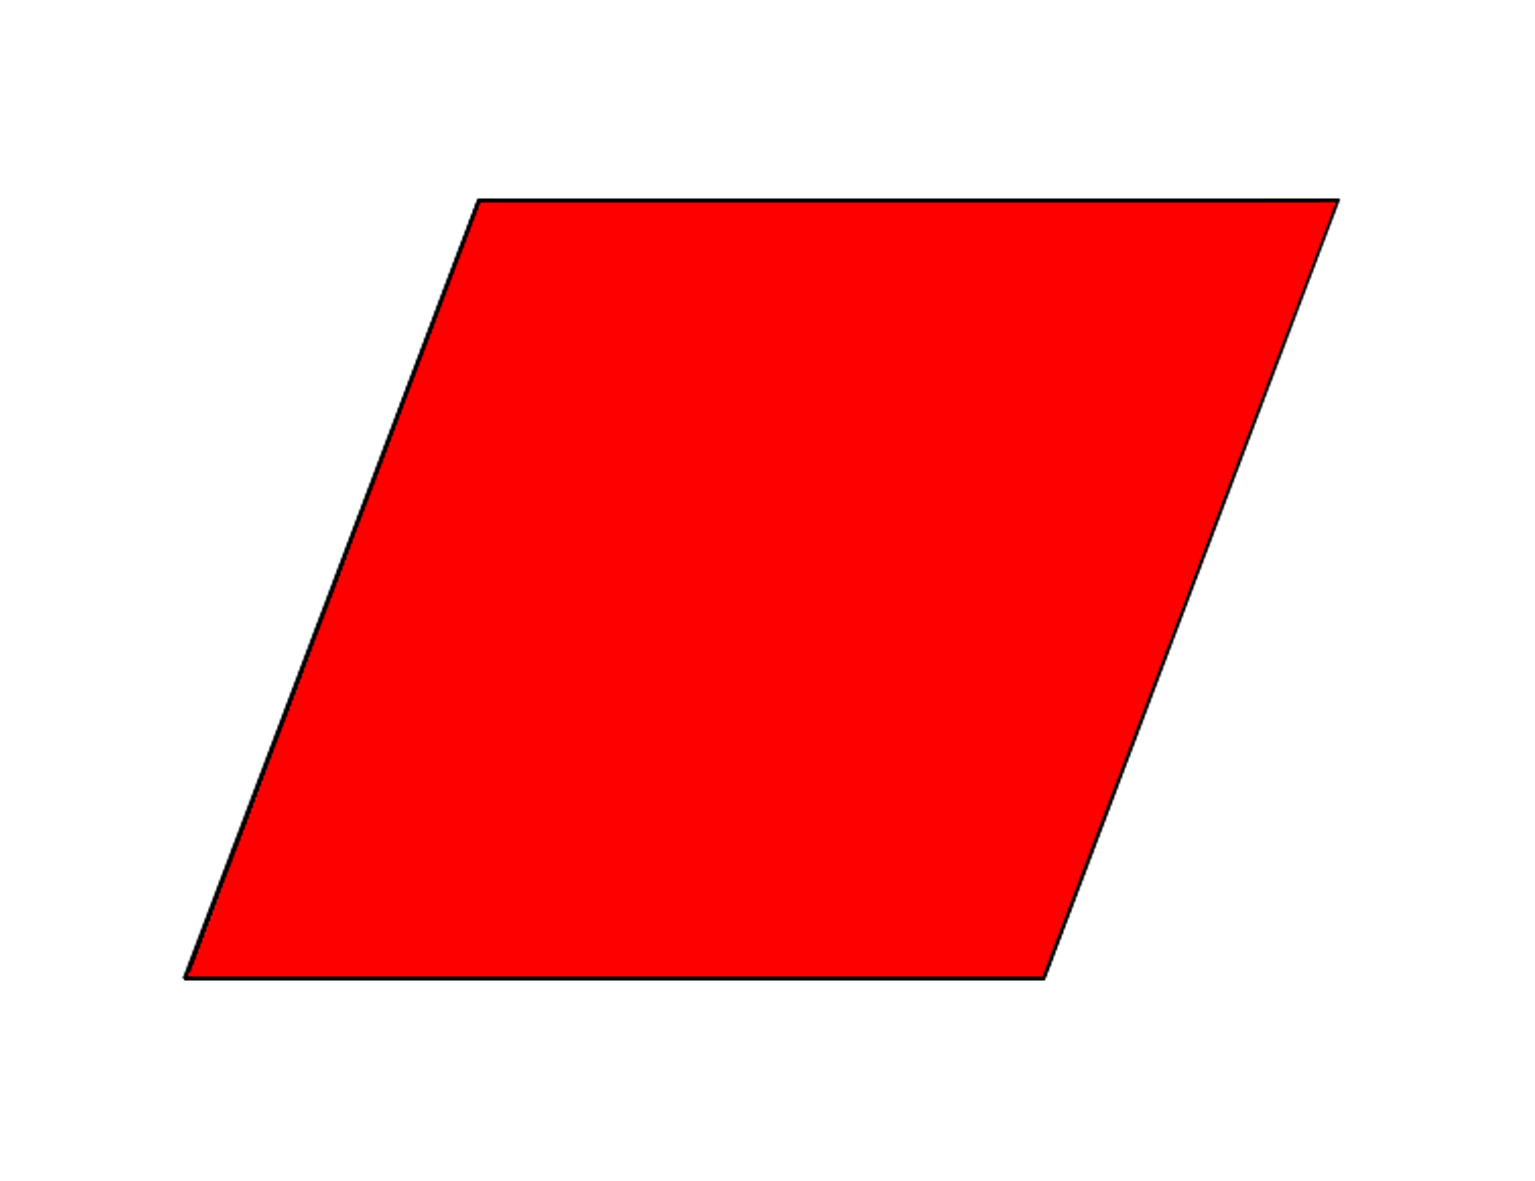 parallelogram clip art - photo #1